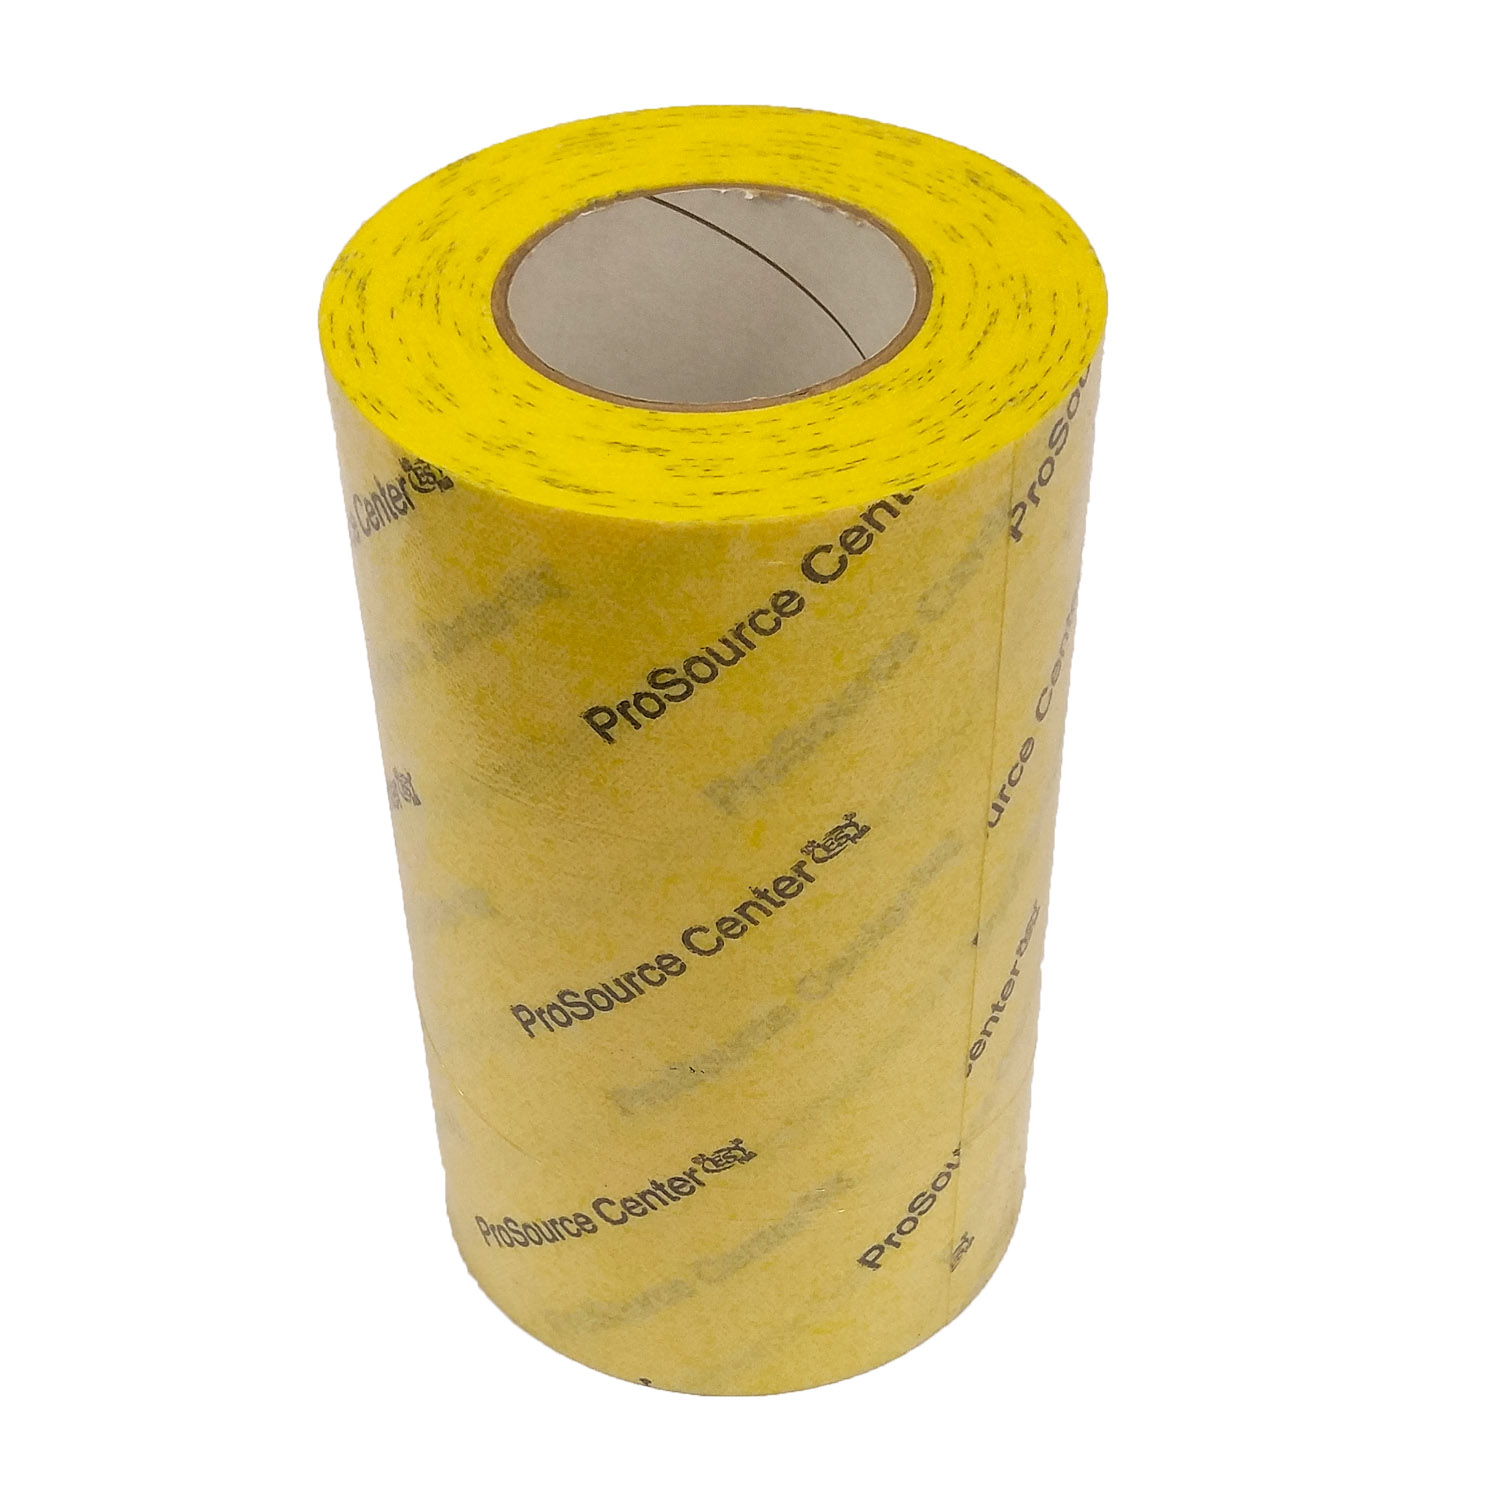 PSC Pro WP Waterproofing Seam Strips 10 Inch 16 5 Foot Roll by Pro-Source Center